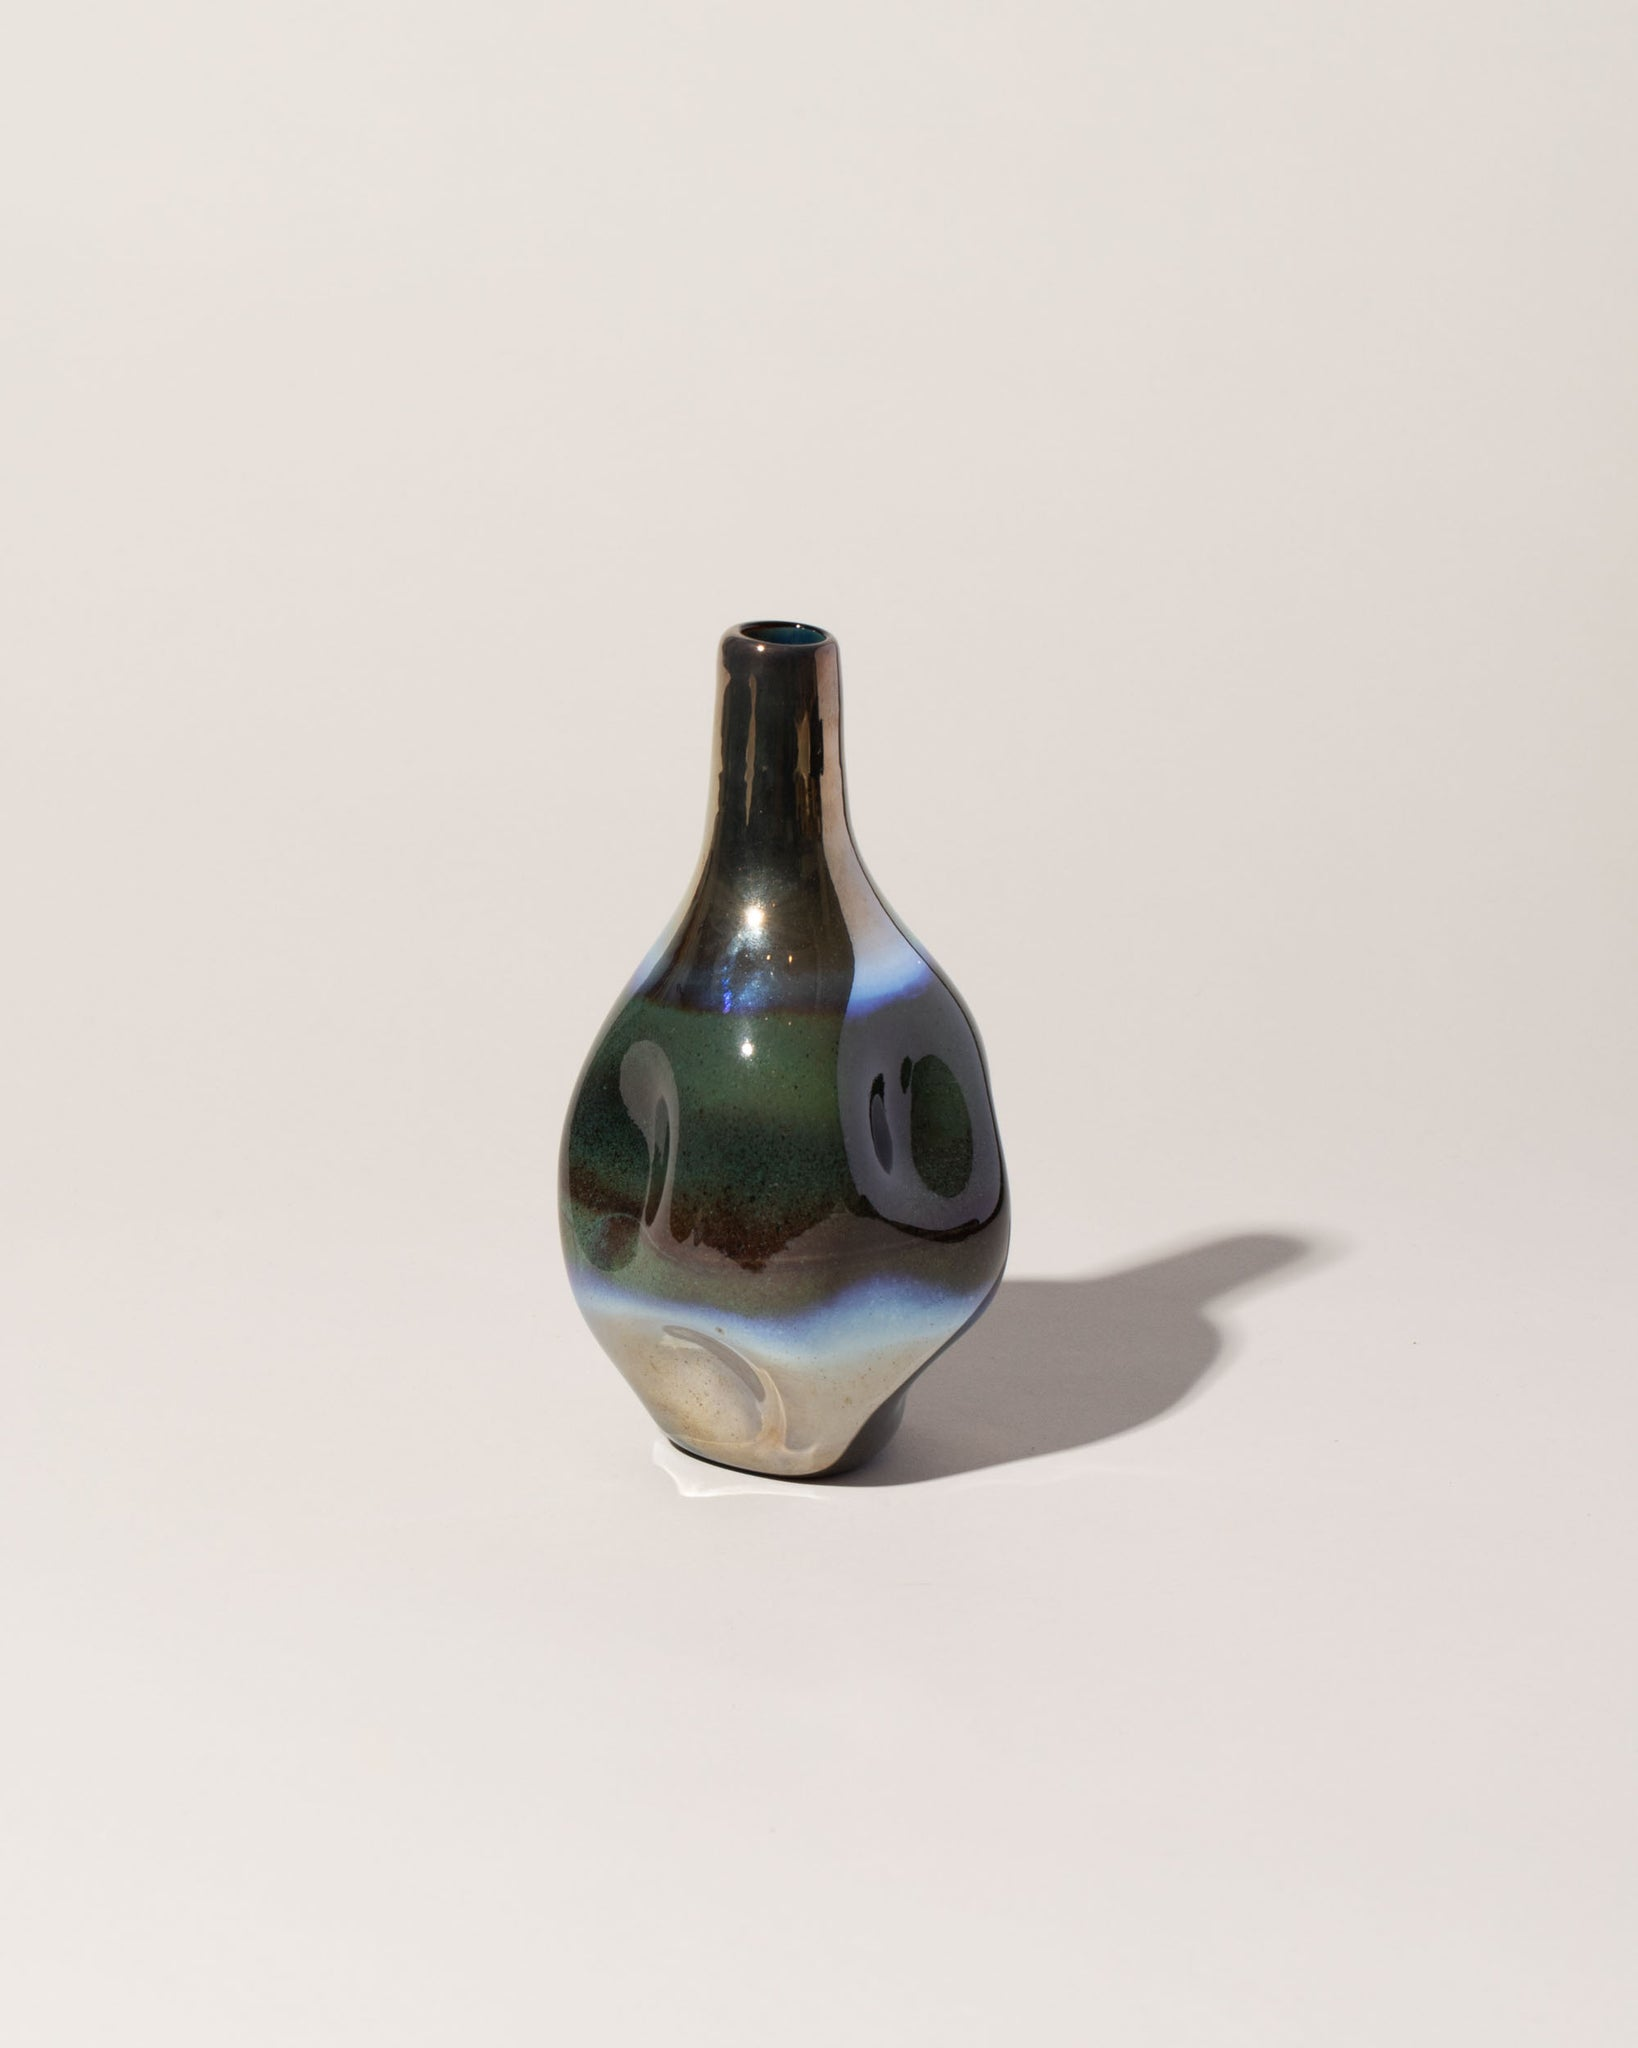 Long Neck Bottle Vase